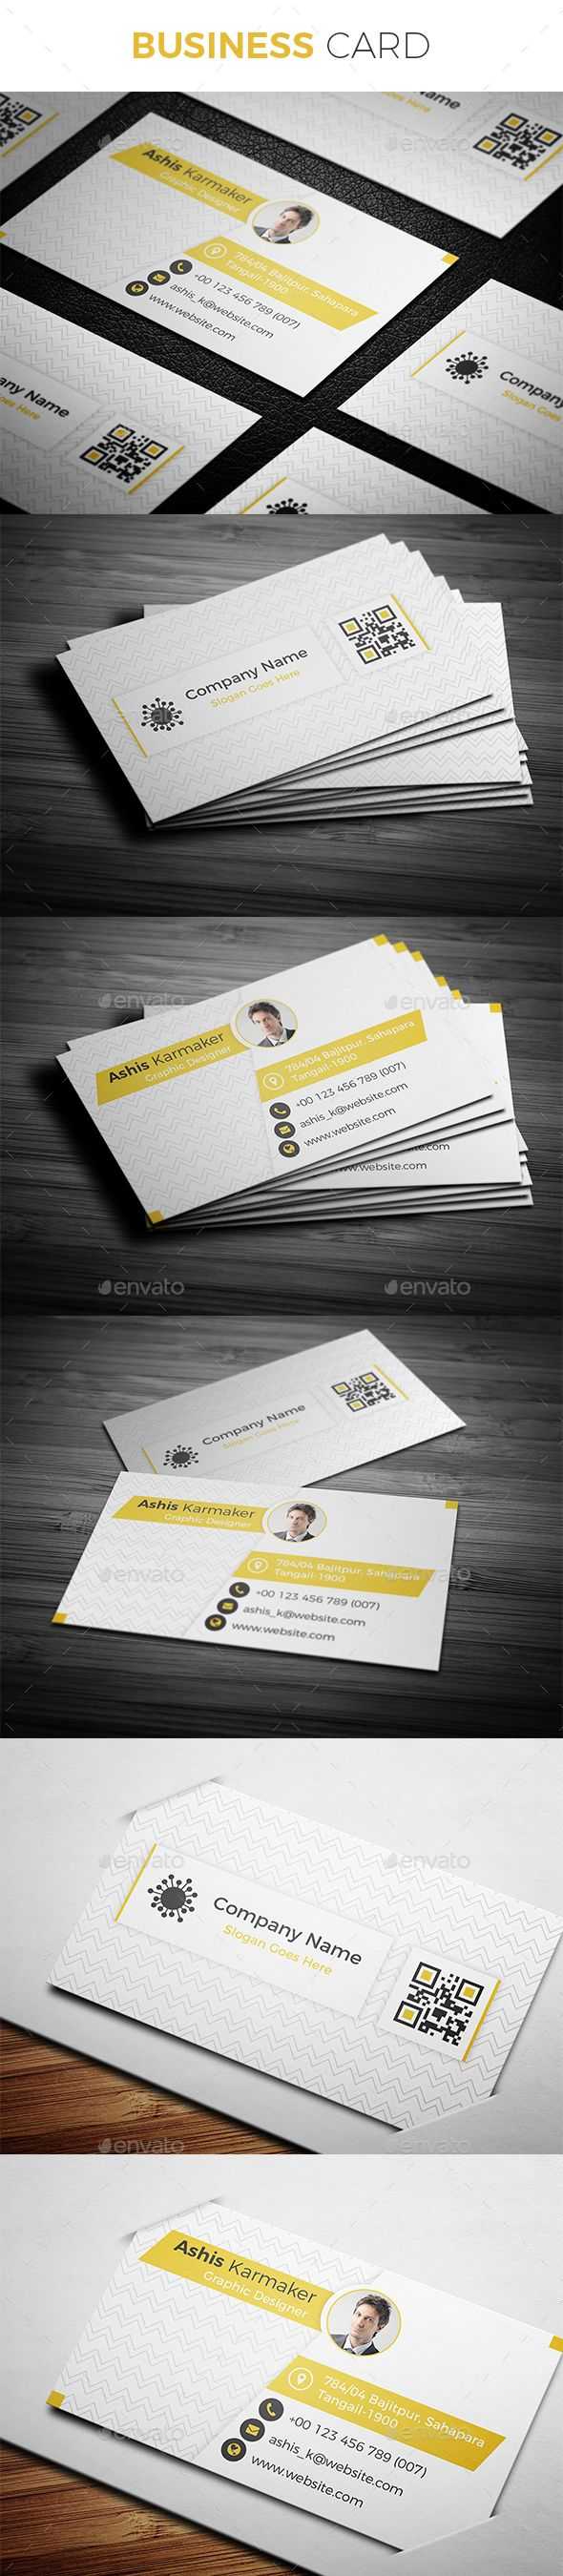 #Business #Card - Creative Business Cards Download here: https://graphicriver.net/item/business-card/19554585?ref=alena994